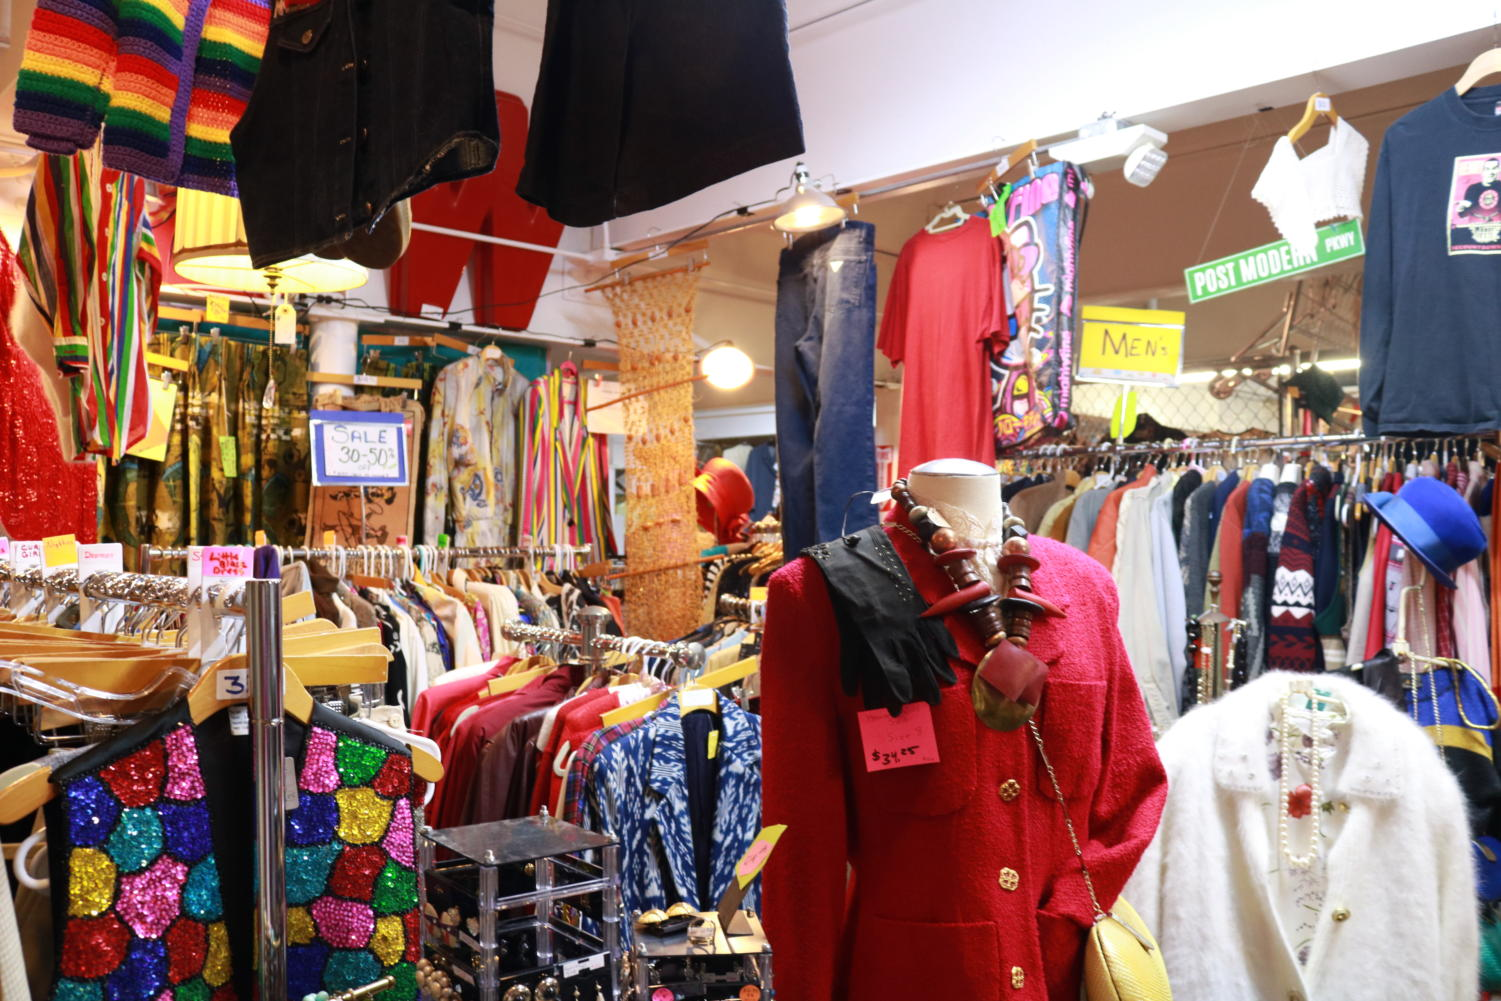 Lula B's Oak Cliff Antique is one of the many thrift stores in the Metroplex, and is located 1982 Fort Worth Ave in Dallas. The popularity of thrifting has significantly increased over the past few years, with the environmental future of the world at the forefront of many minds.